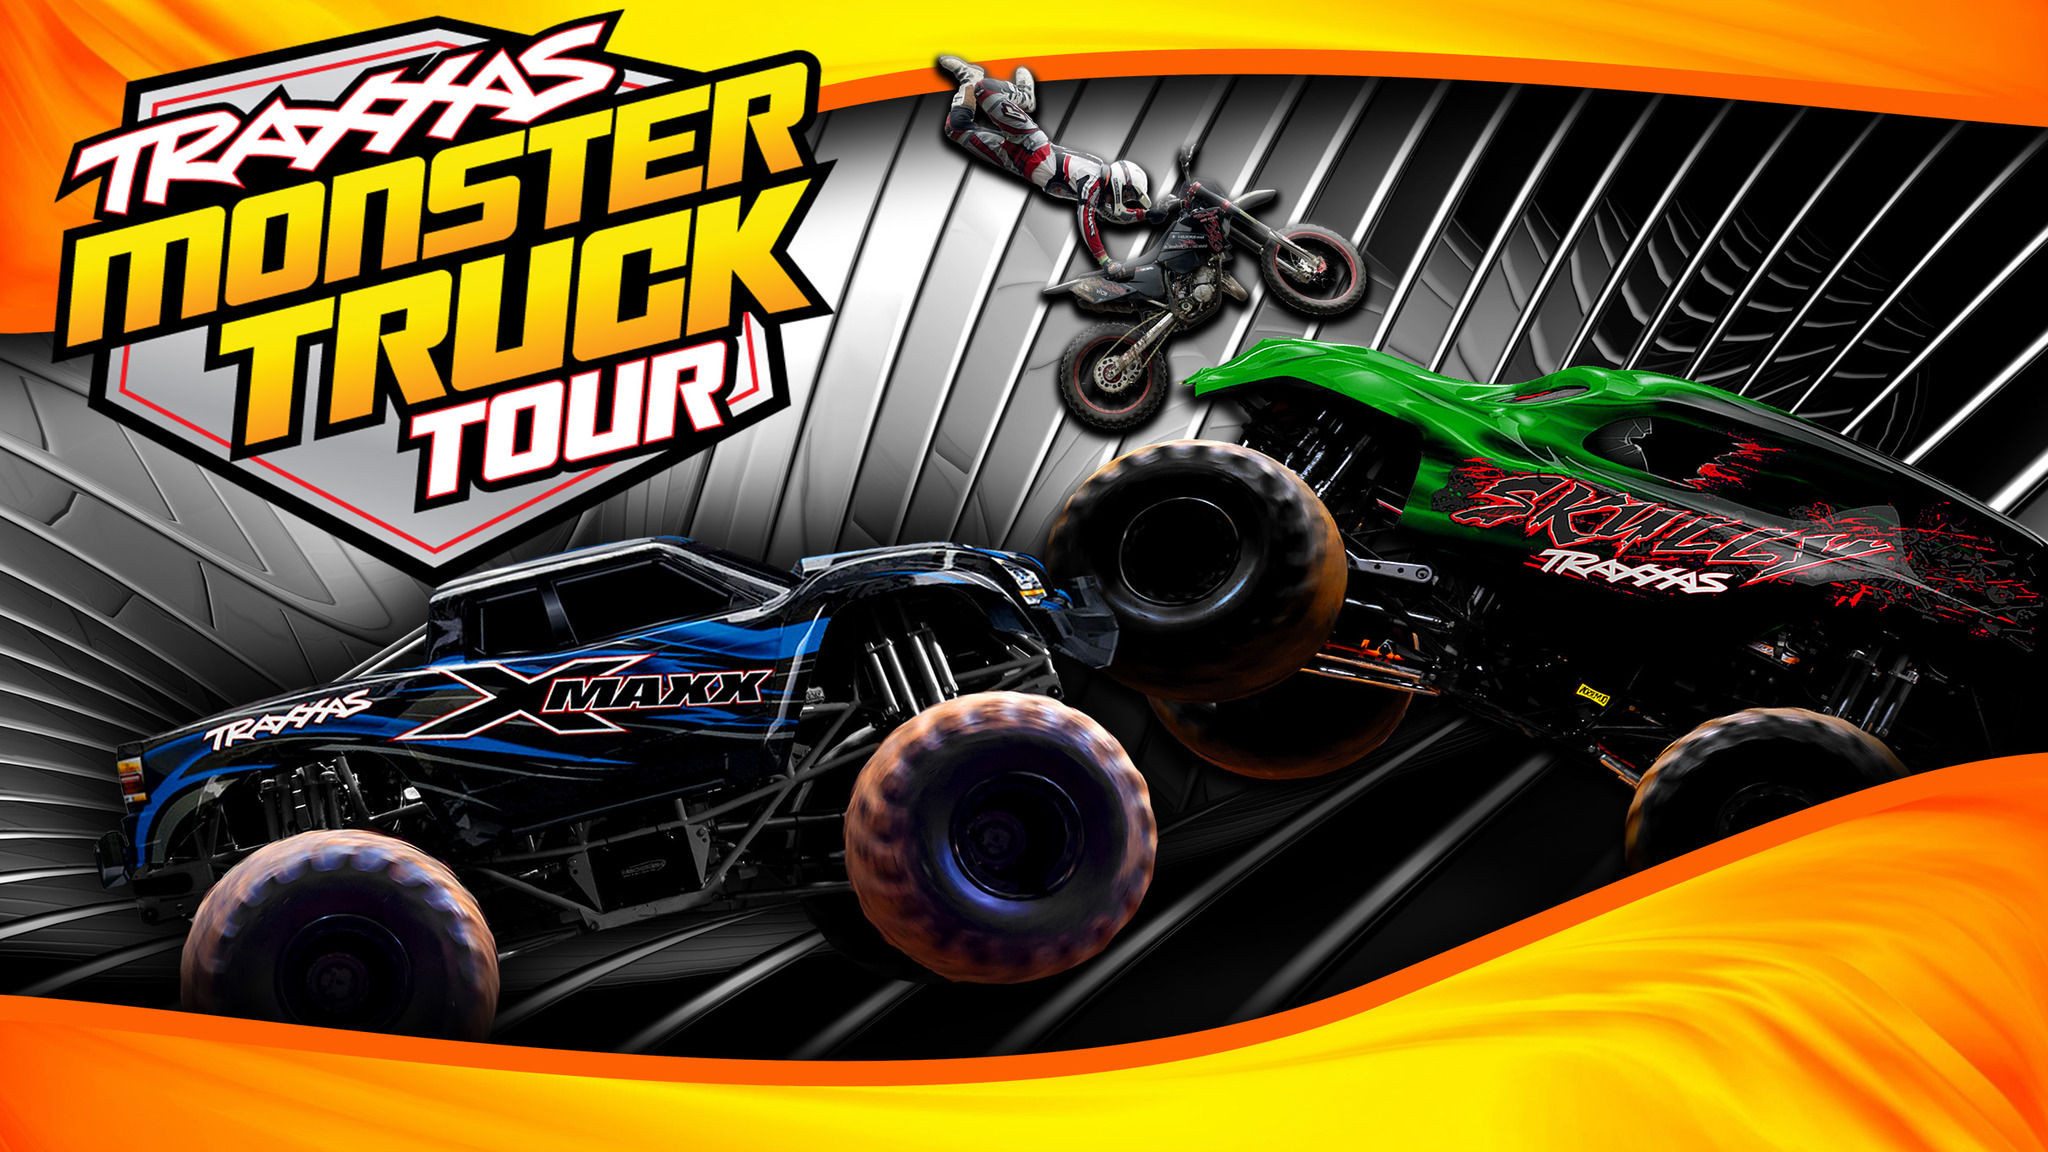 TRAXXAS Monster Truck Tour @ 1:30pm